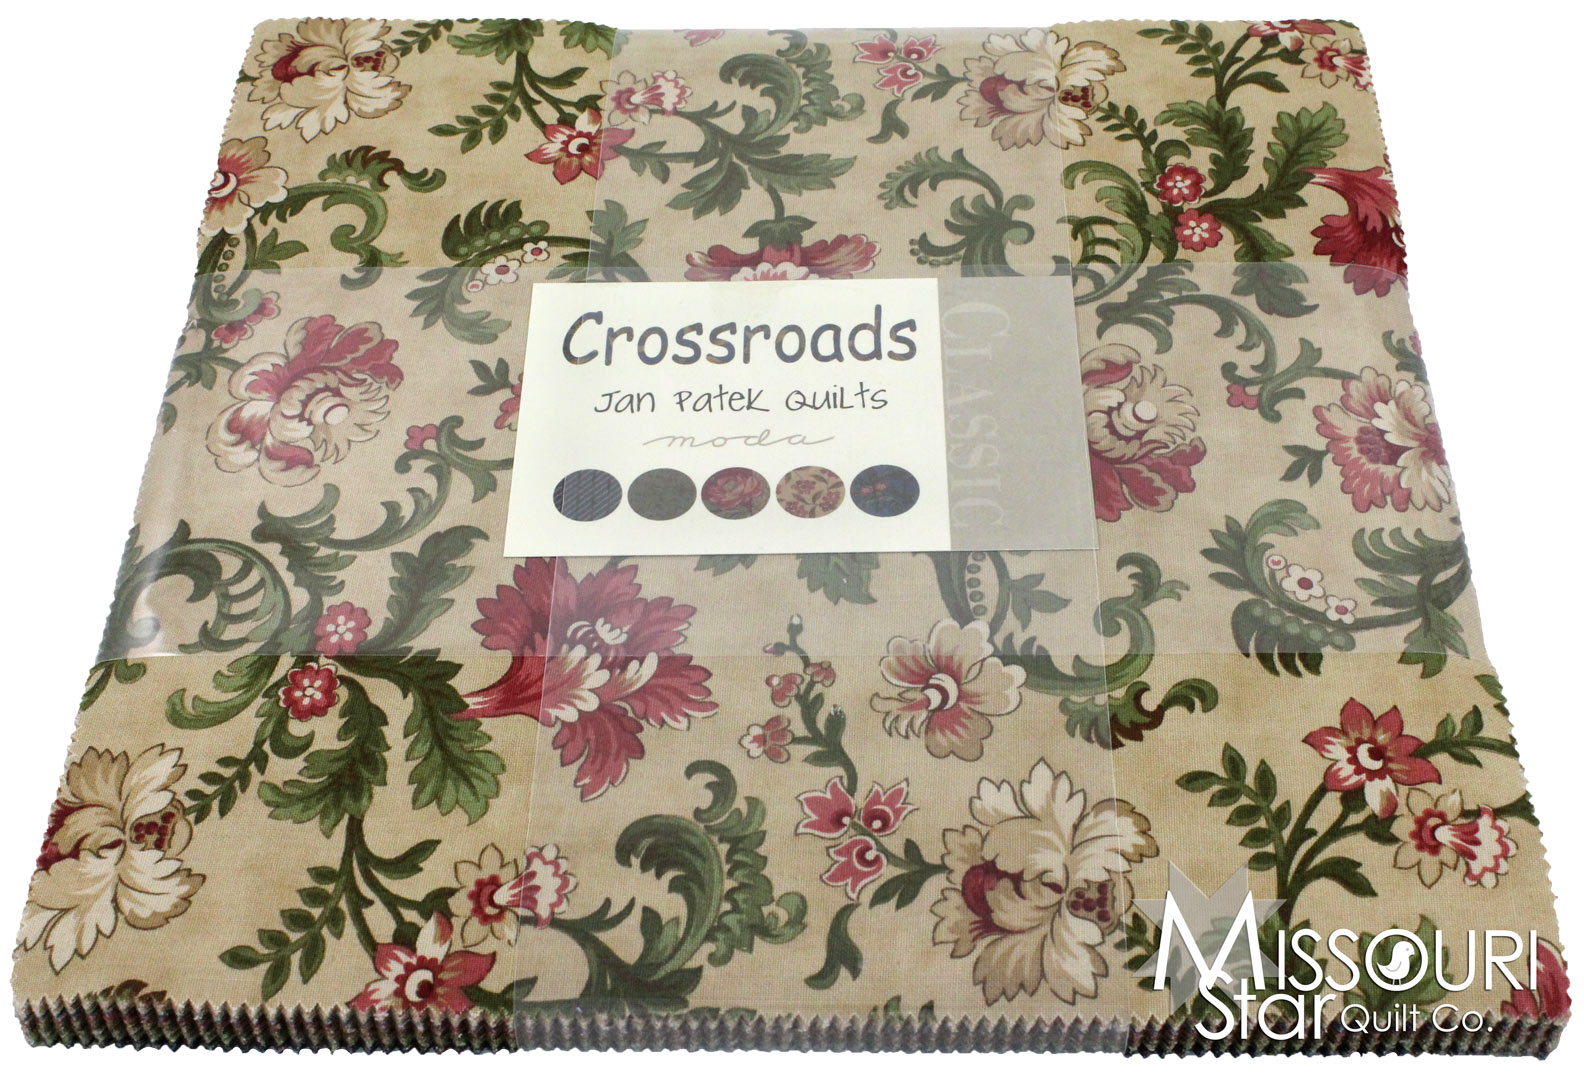 Layer Cake Quilt Material : Crossroads Layer Cake - Jan Patek Quilts - Moda Fabrics ...